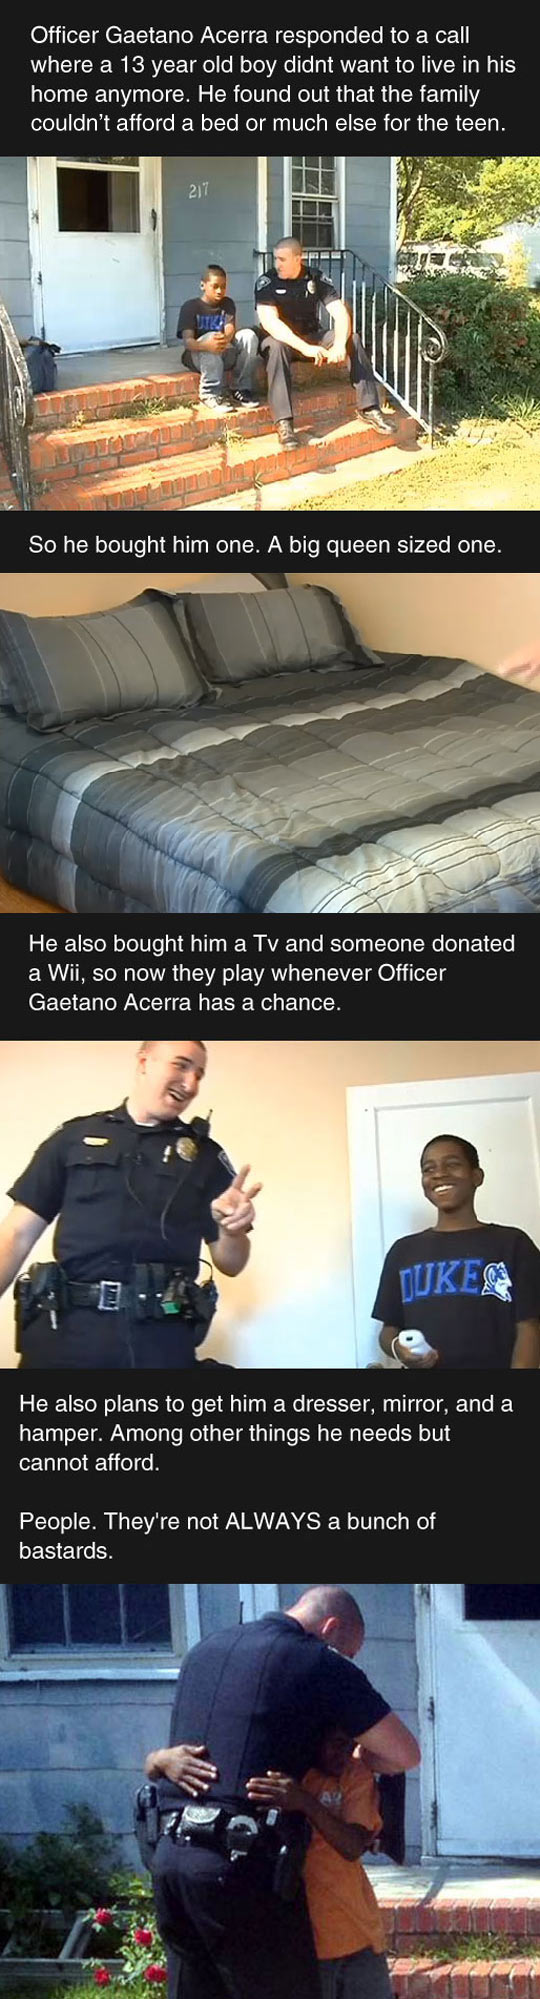 A Good Police Officer